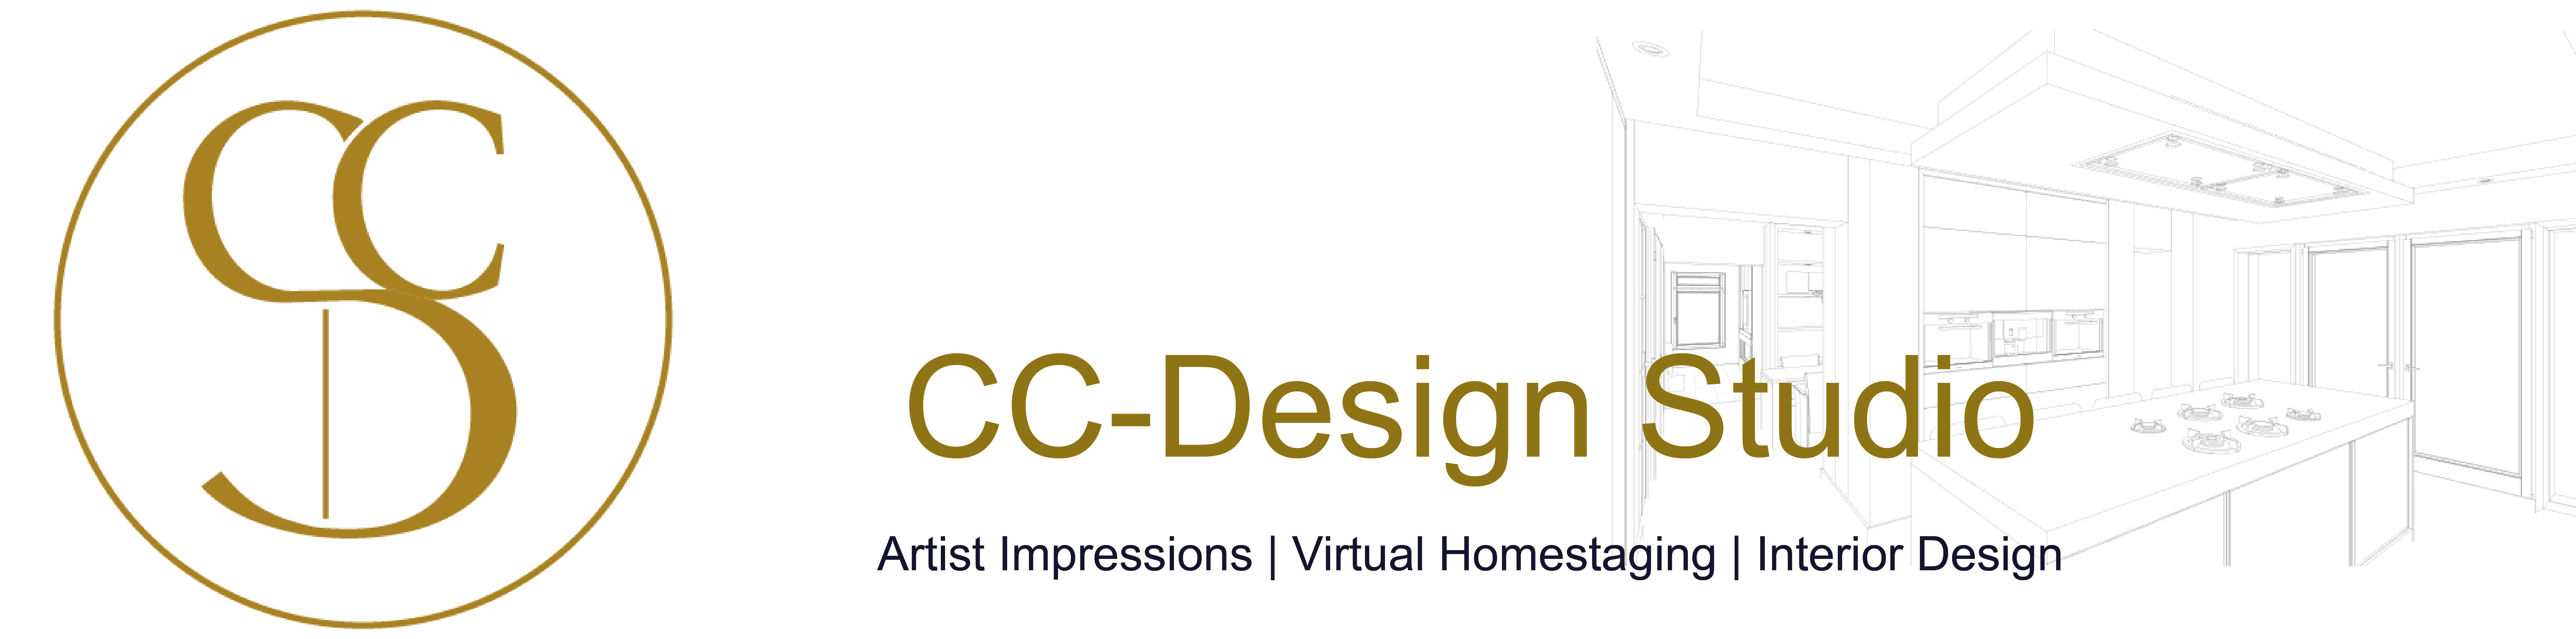 CC-Design Studio